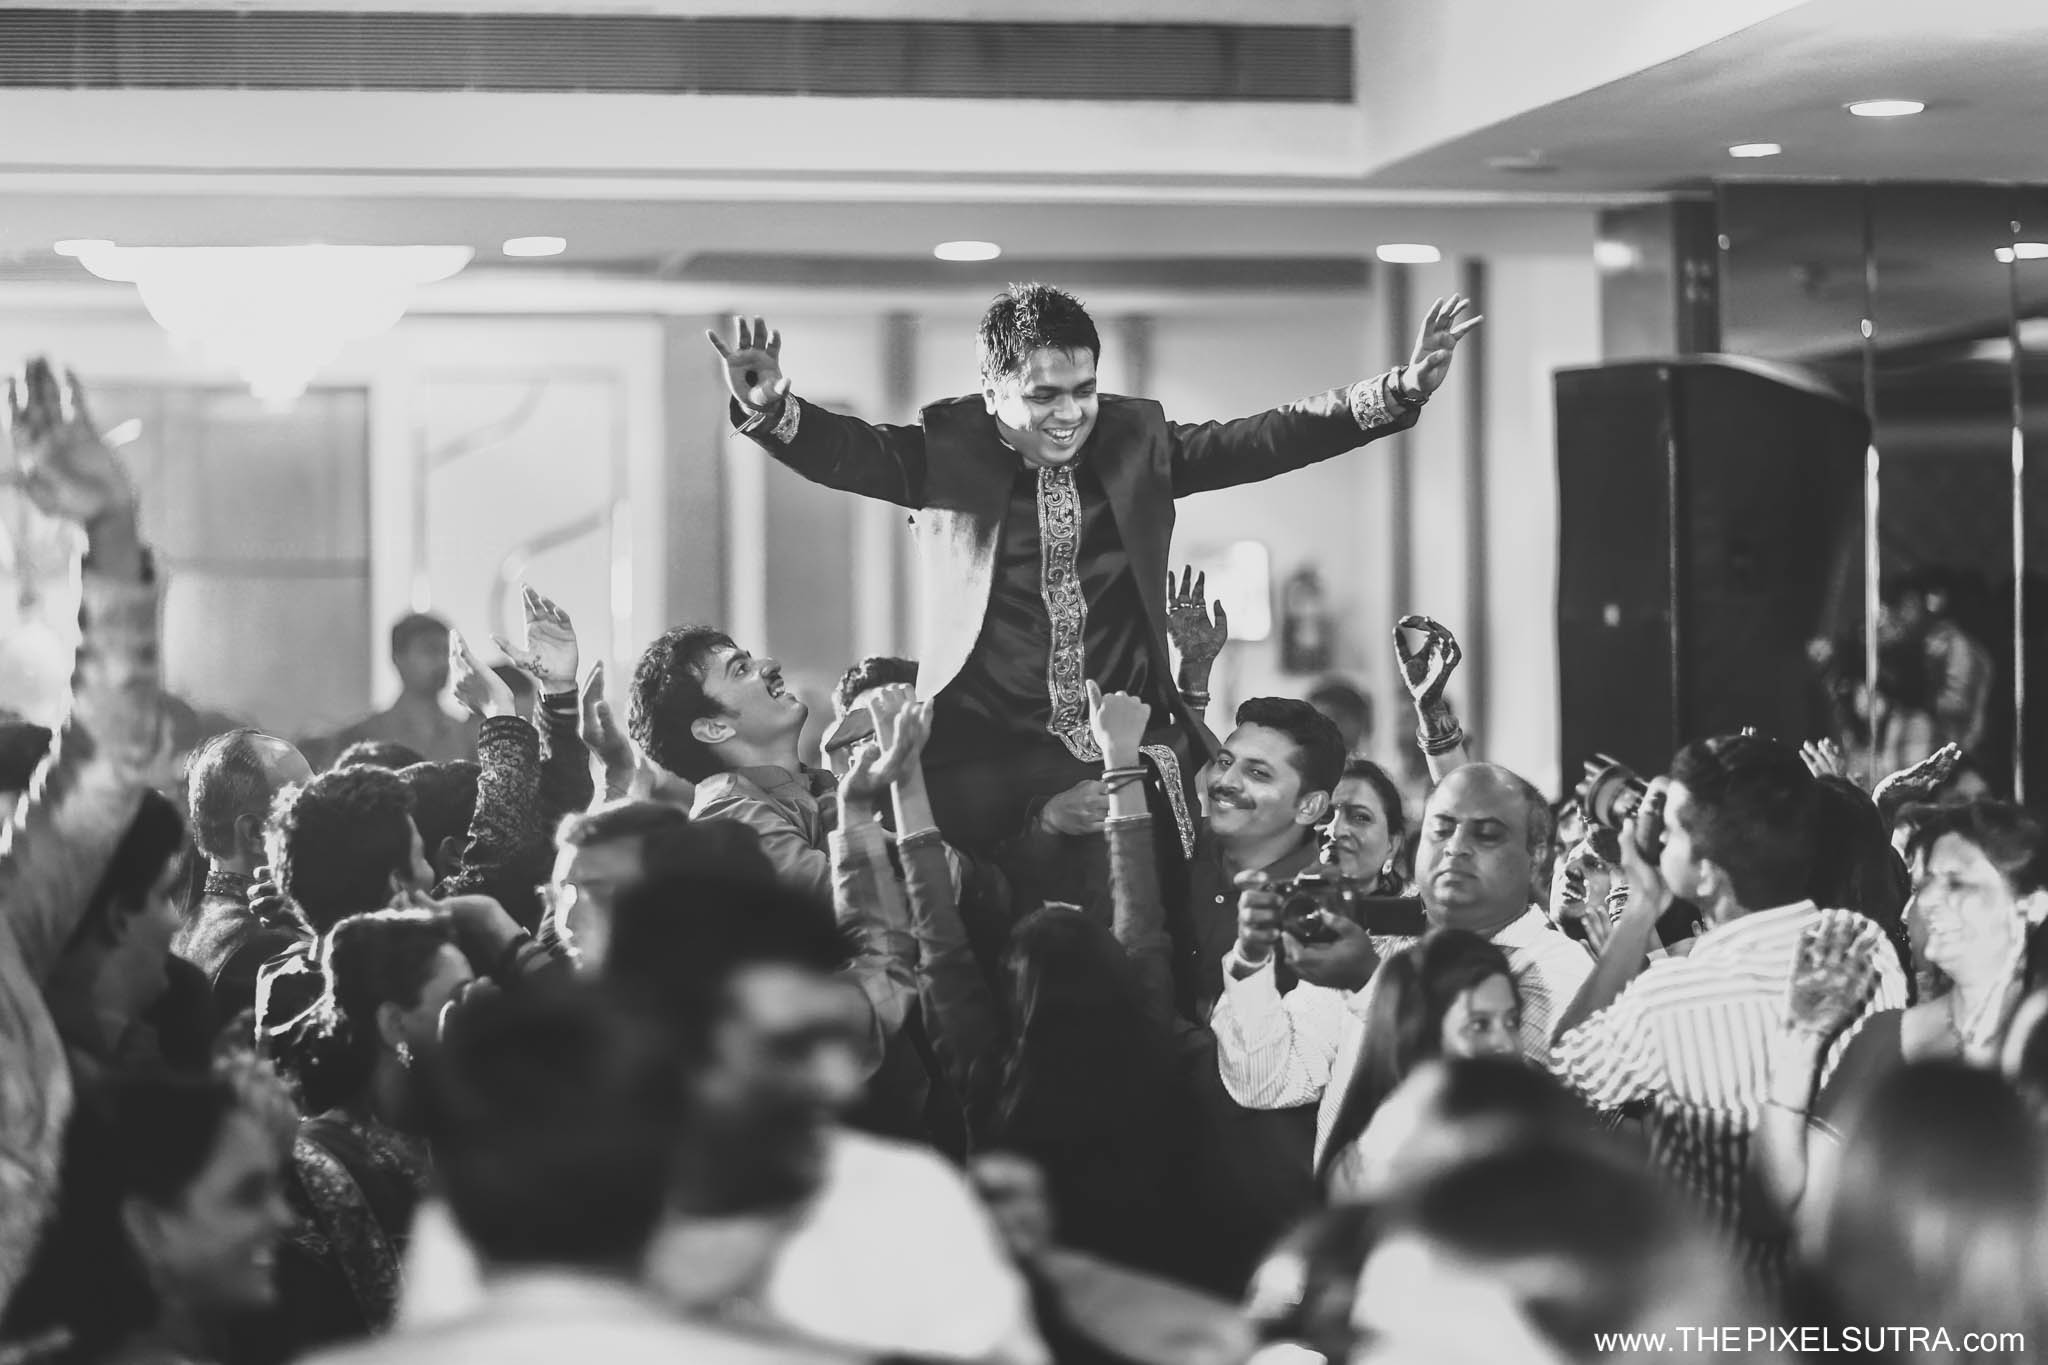 The Pixel Sutra Biral x Shruti Candid Wedding photographer Mumbai Best  (29).jpg